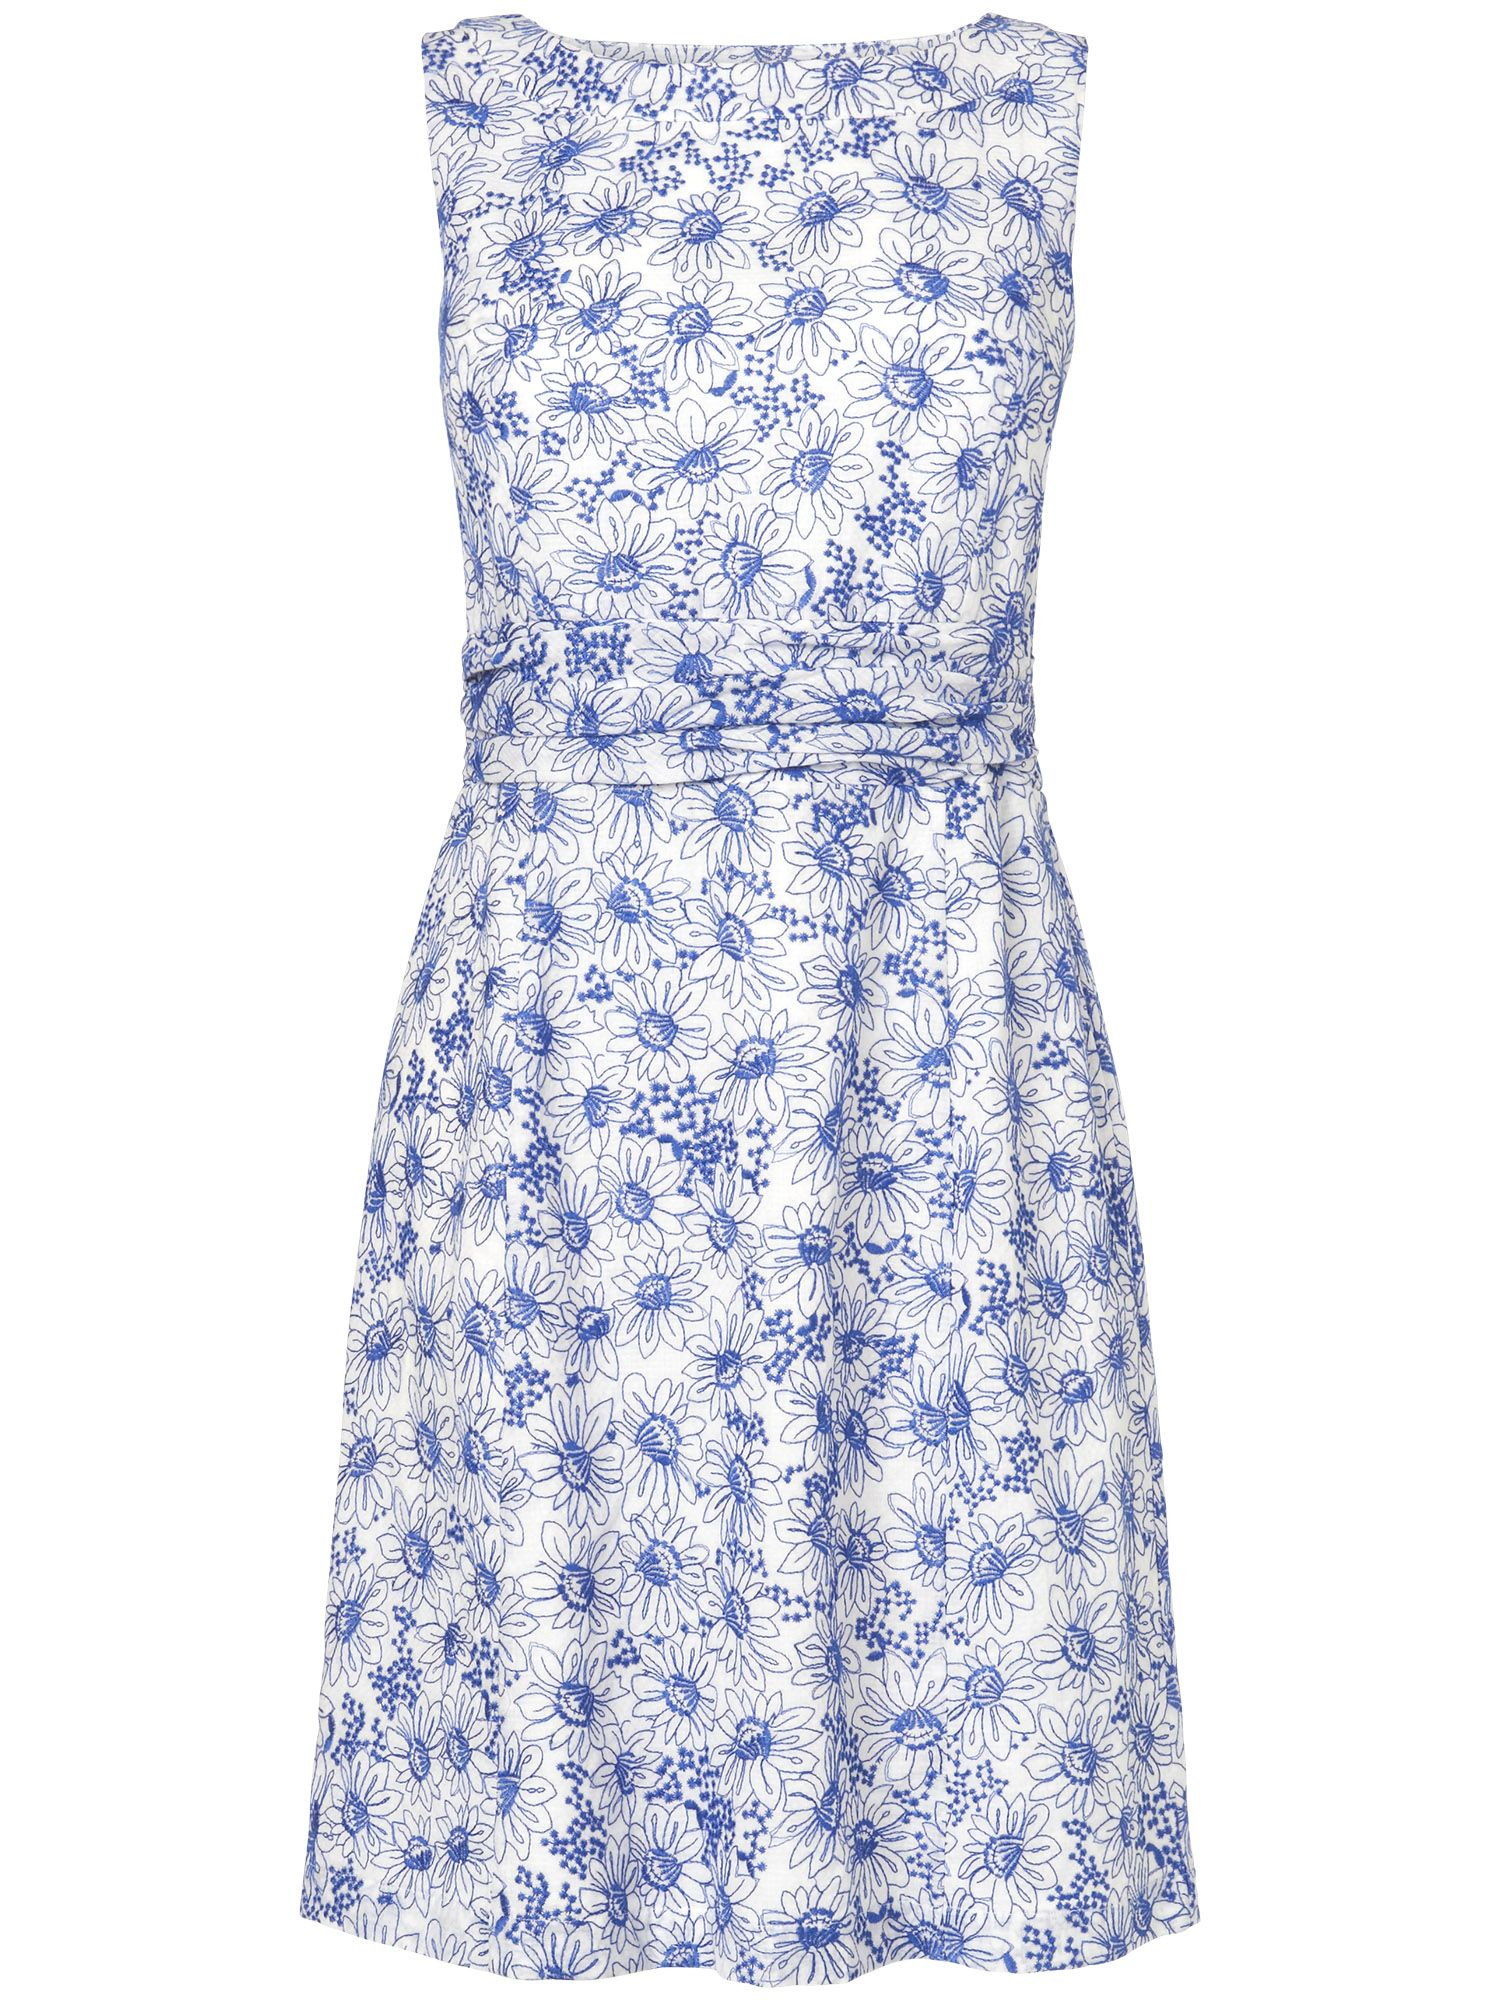 Anneka floral embroidered shift dress